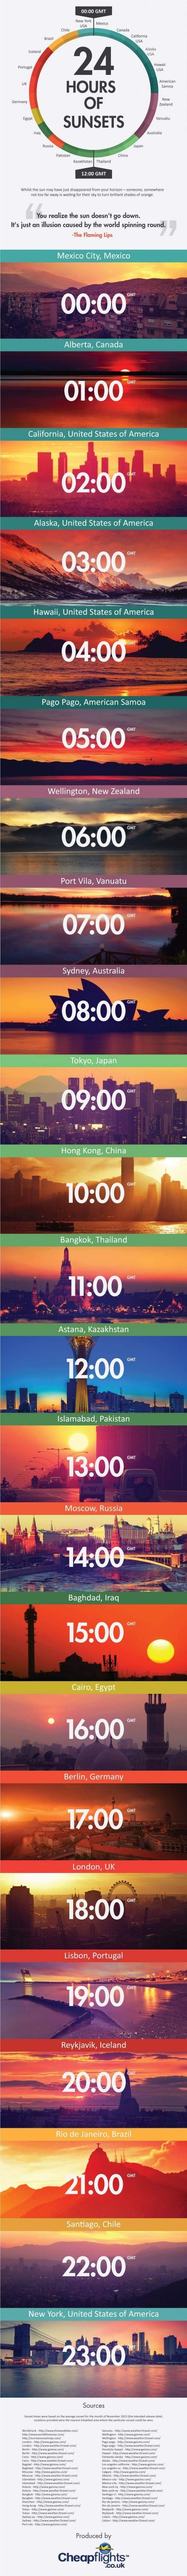 24 hours of sunsets around the globe #infographic